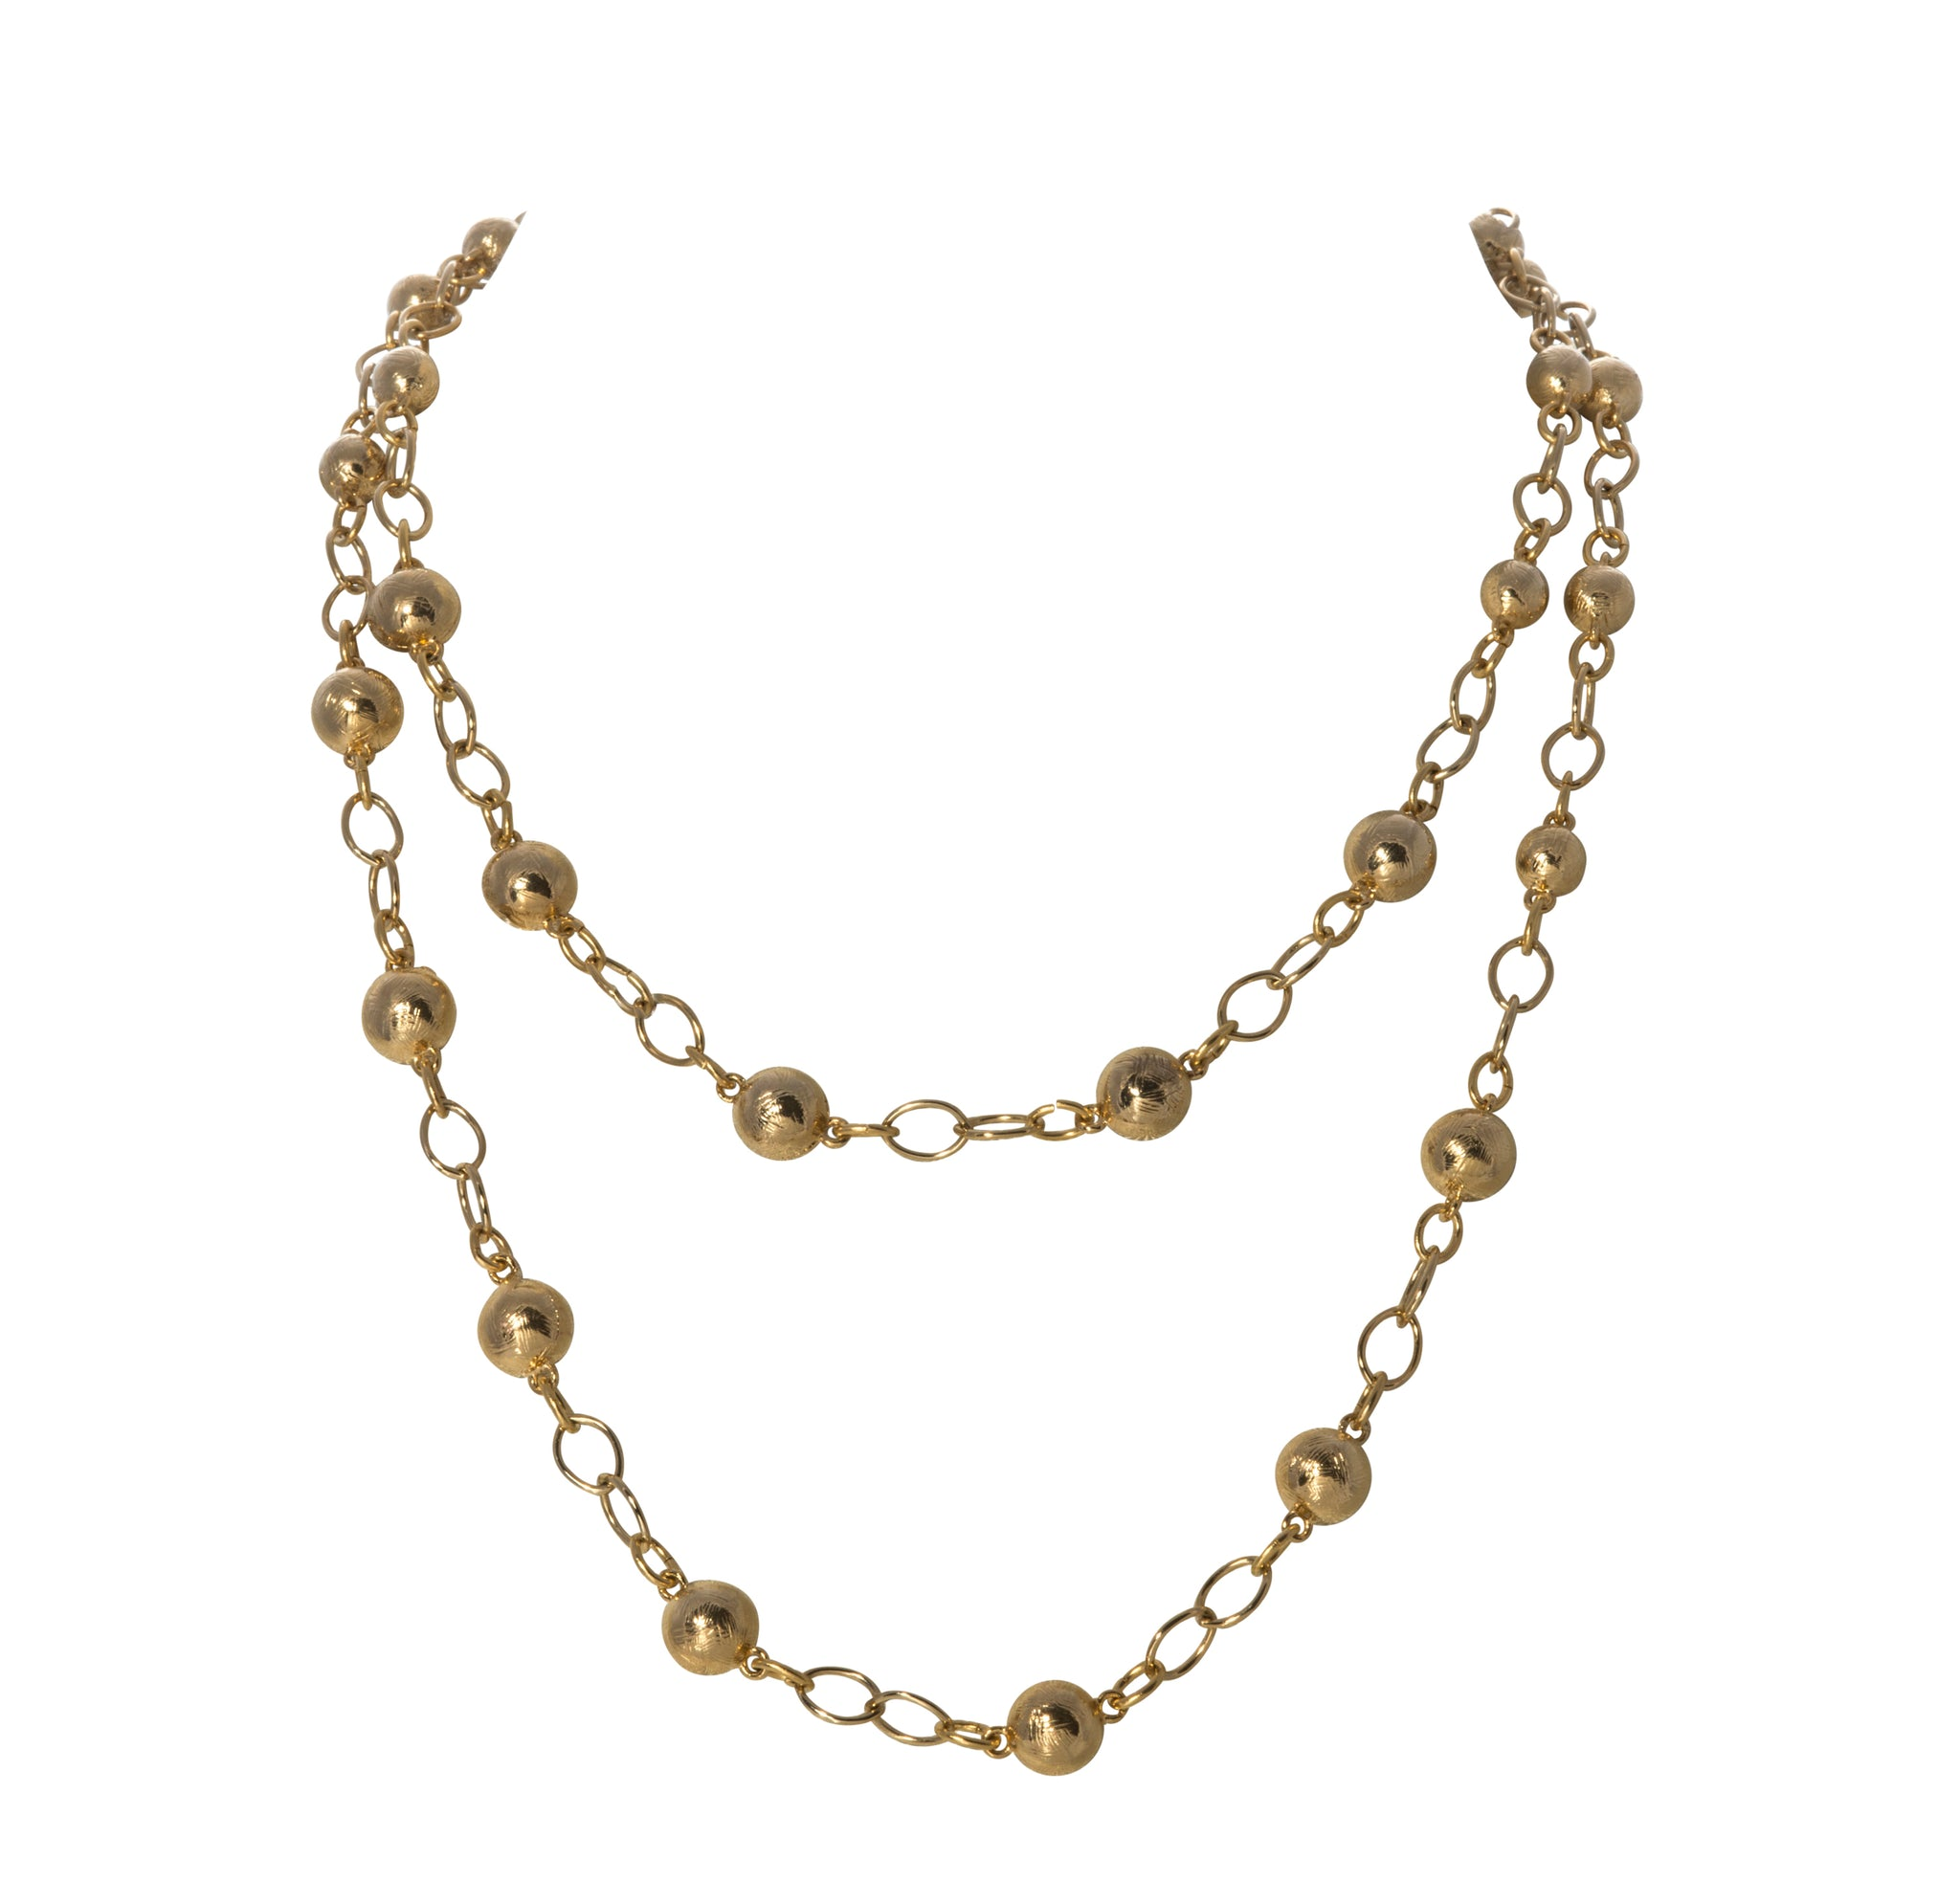 "Goldbug Palm Textured Bead 24"" Necklace"